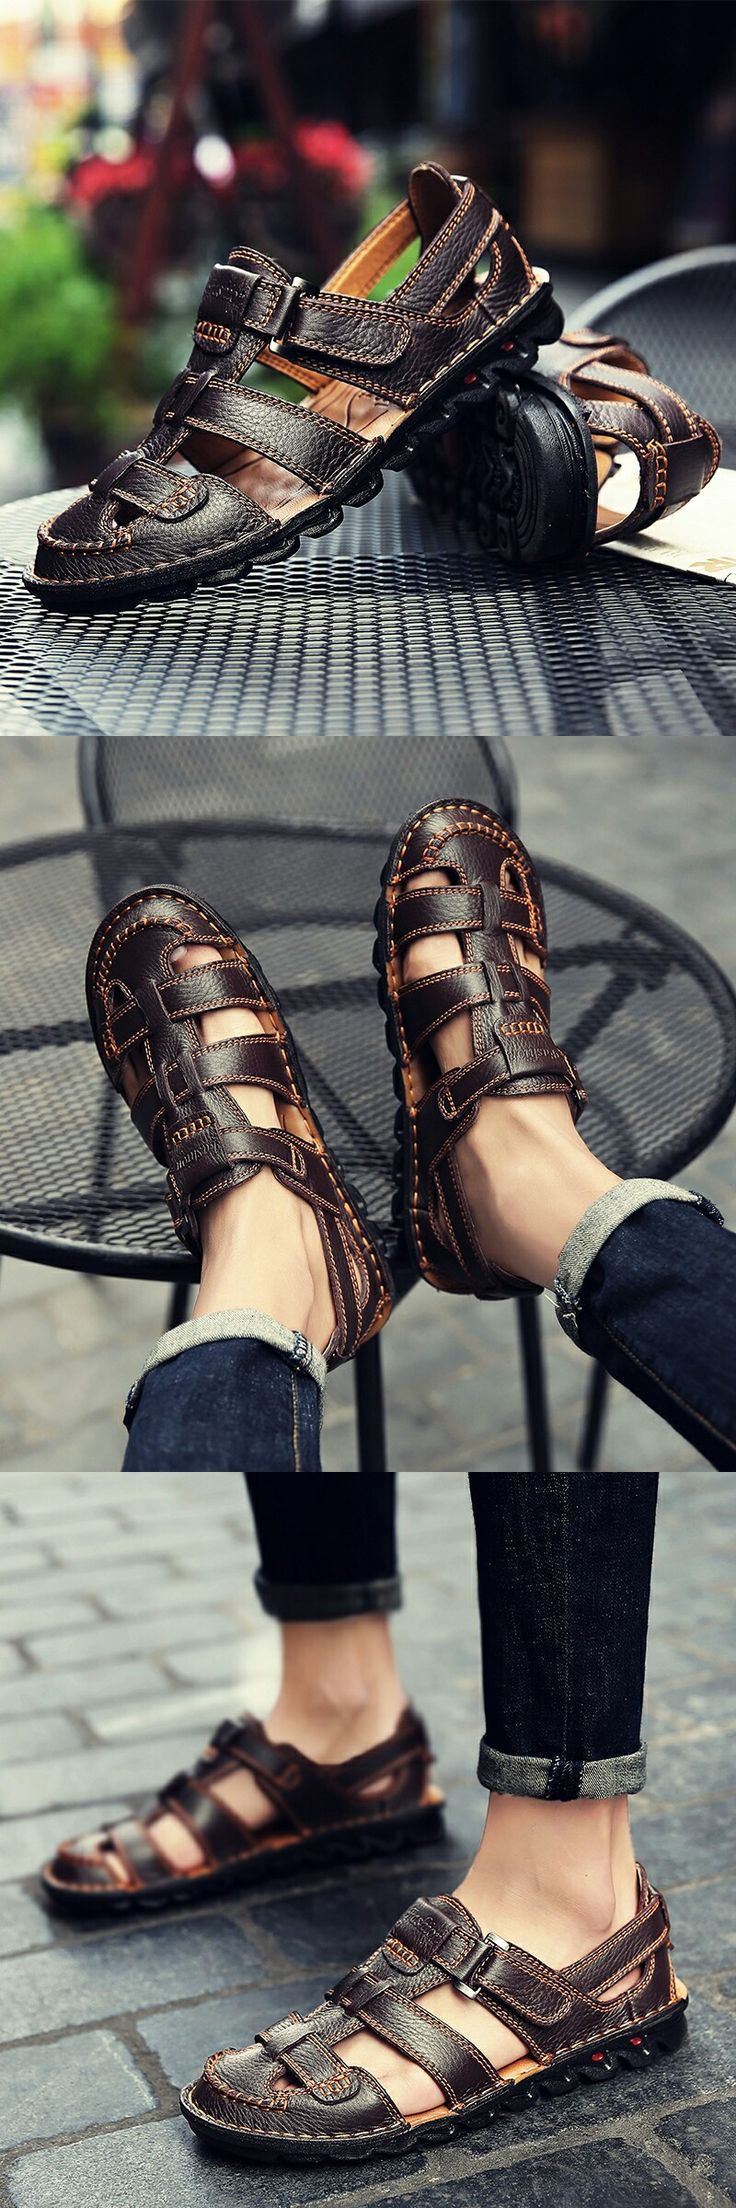 Amazon Men's Casual Outdoor Strap Summer Fisherman Leather Sandals